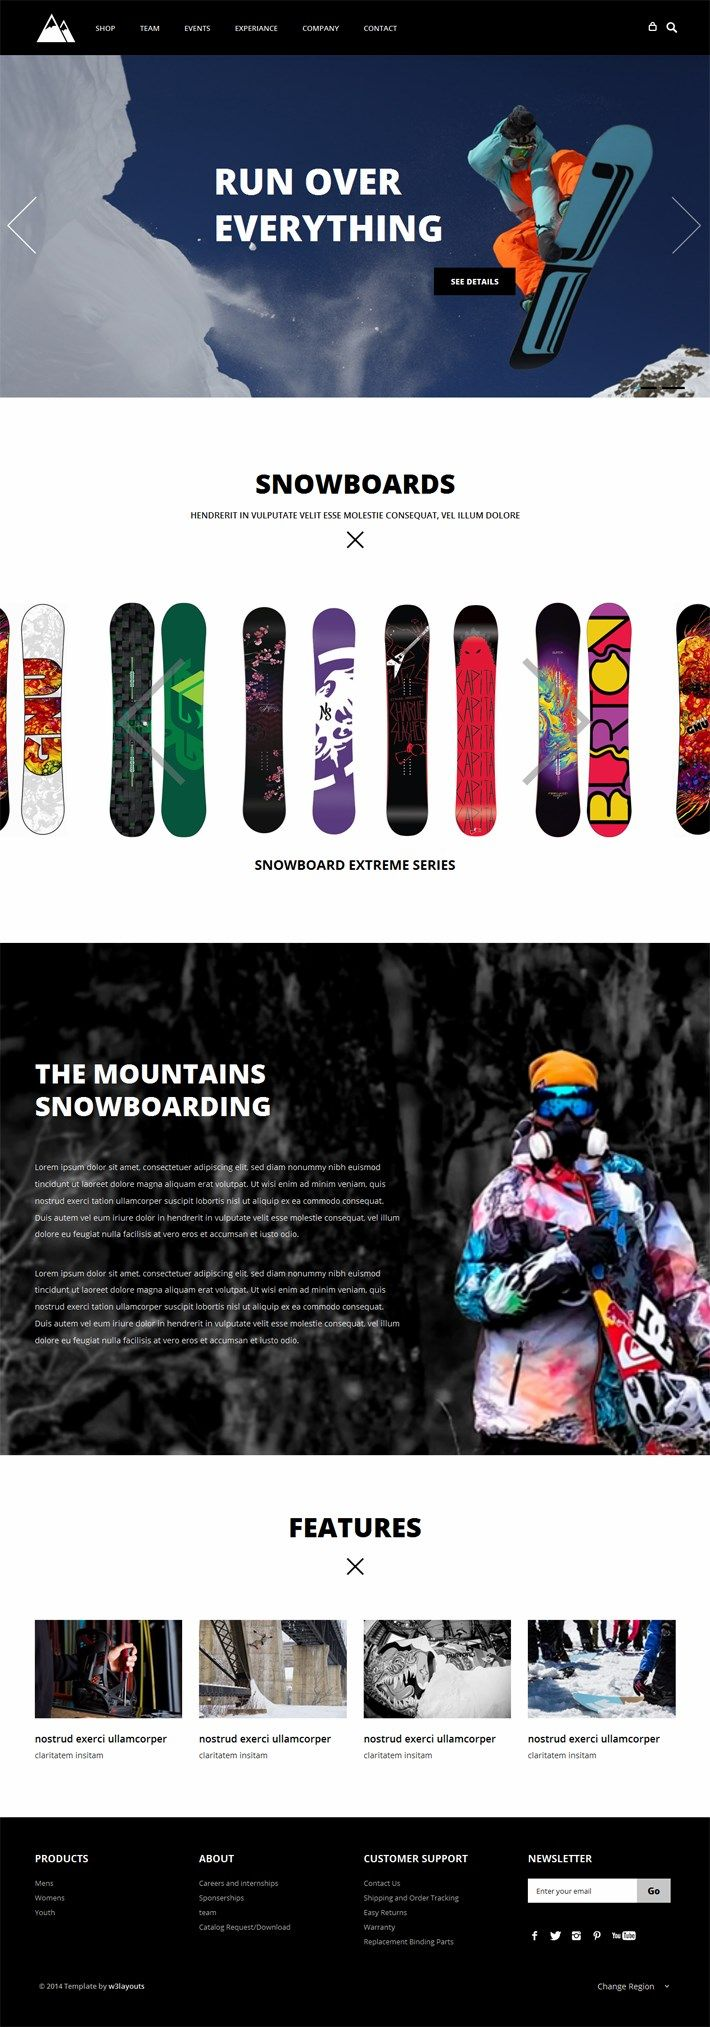 Snowboarding - Flat Responsive Free Template - This seems like the snowboards scrolls through, which s a nice touch. Love the big images.